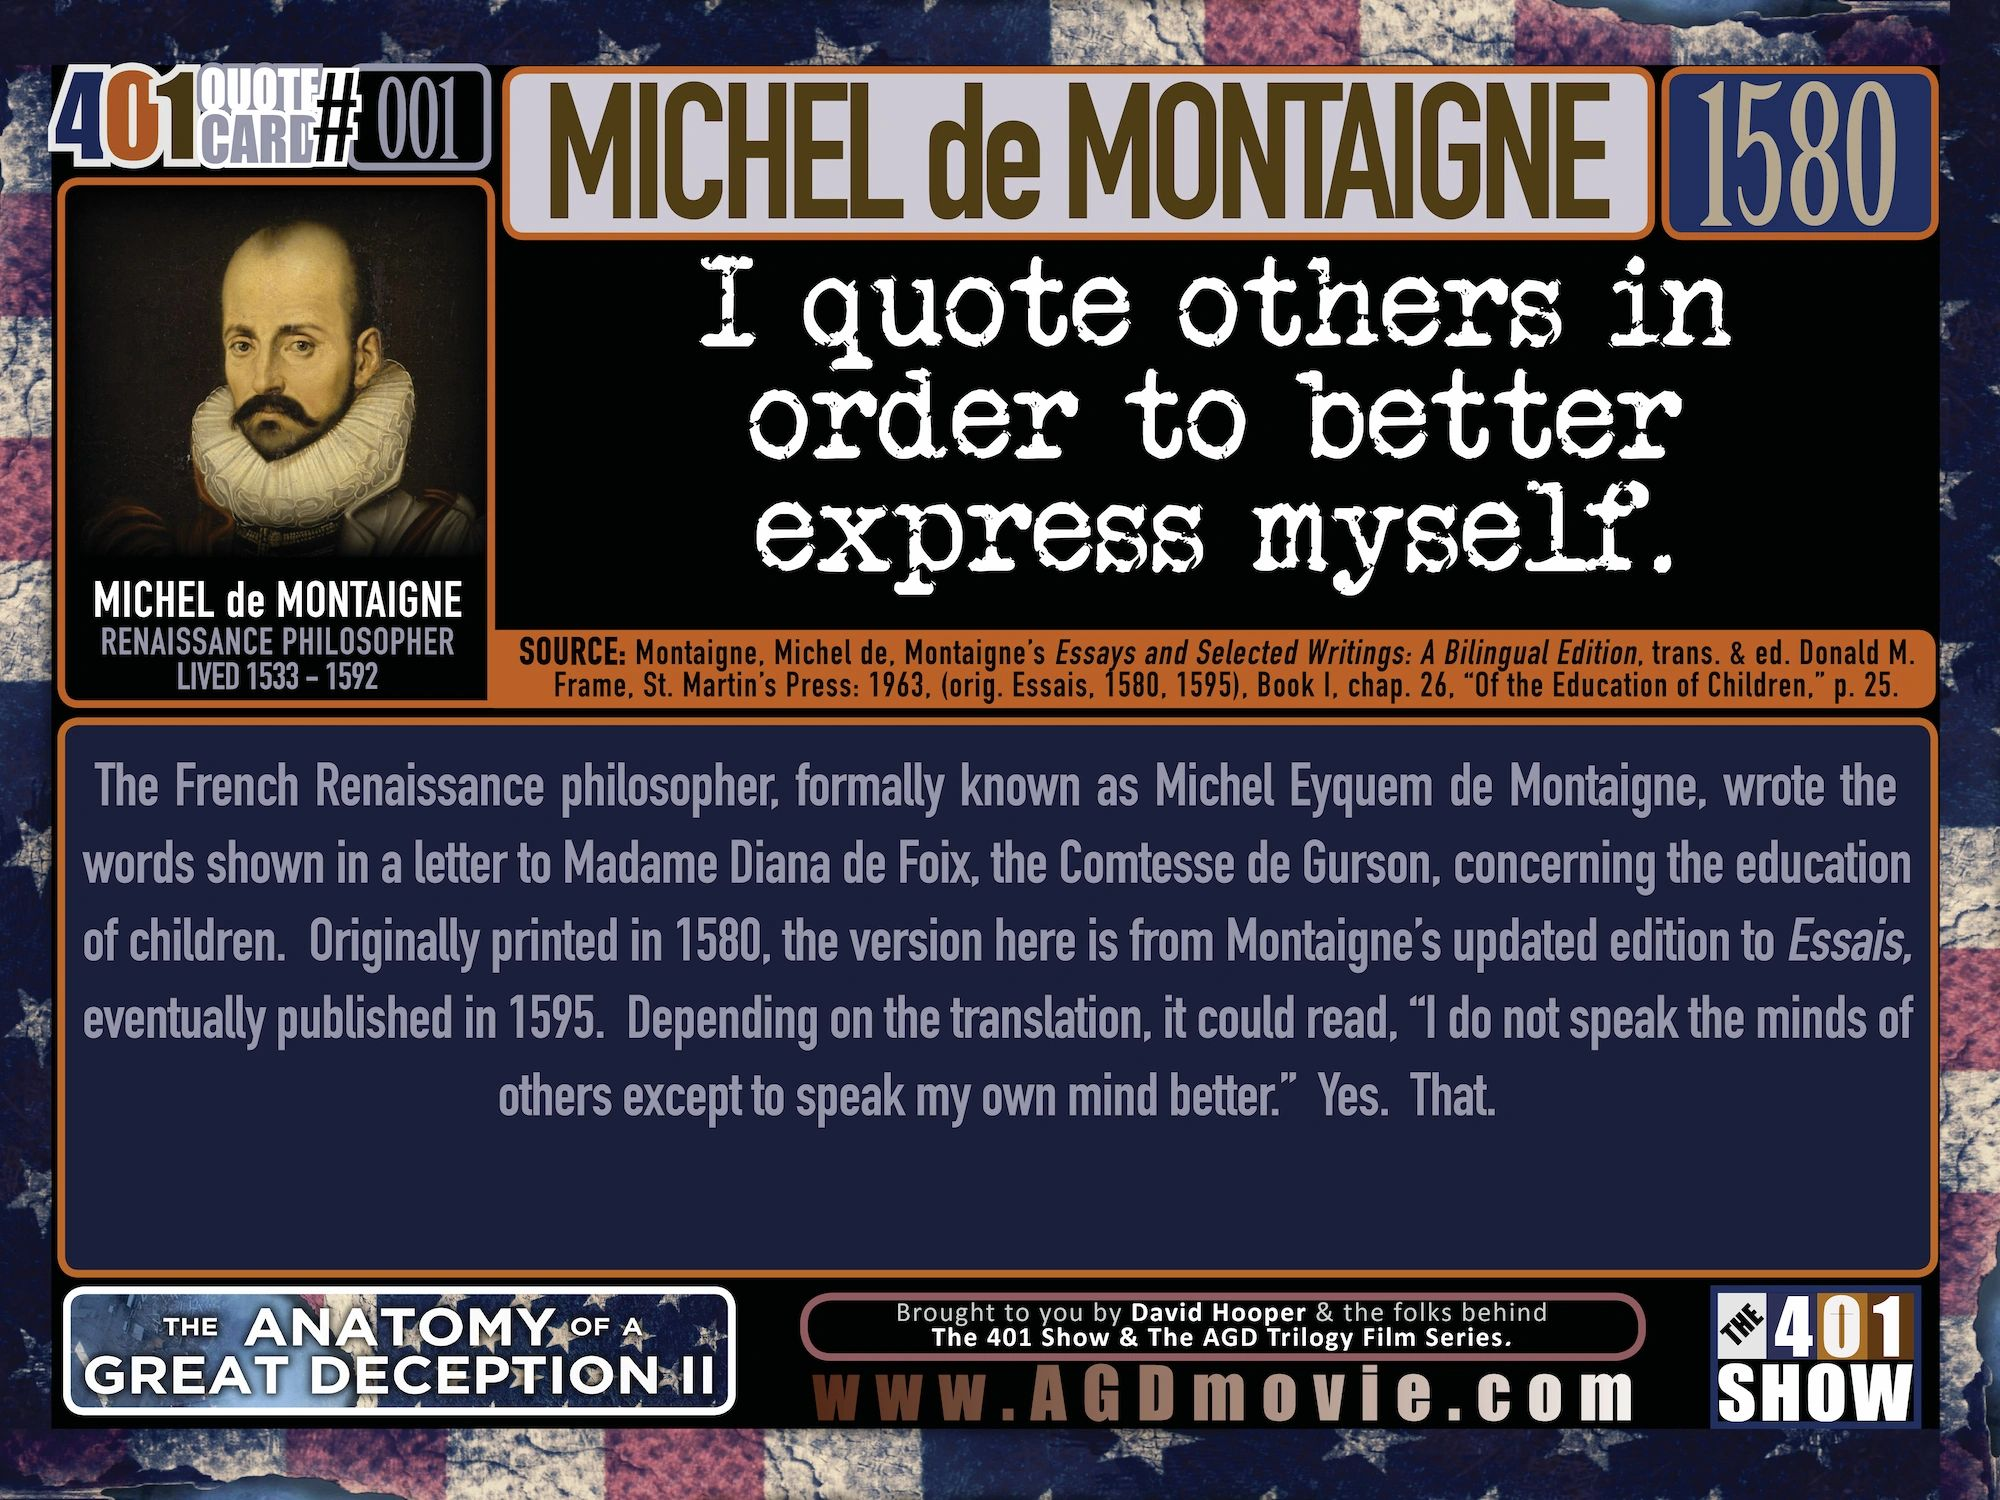 Michele de Montaigne quoted from 1580 in the 401 Quote Card Series by David Hooper & GenpopMedia.